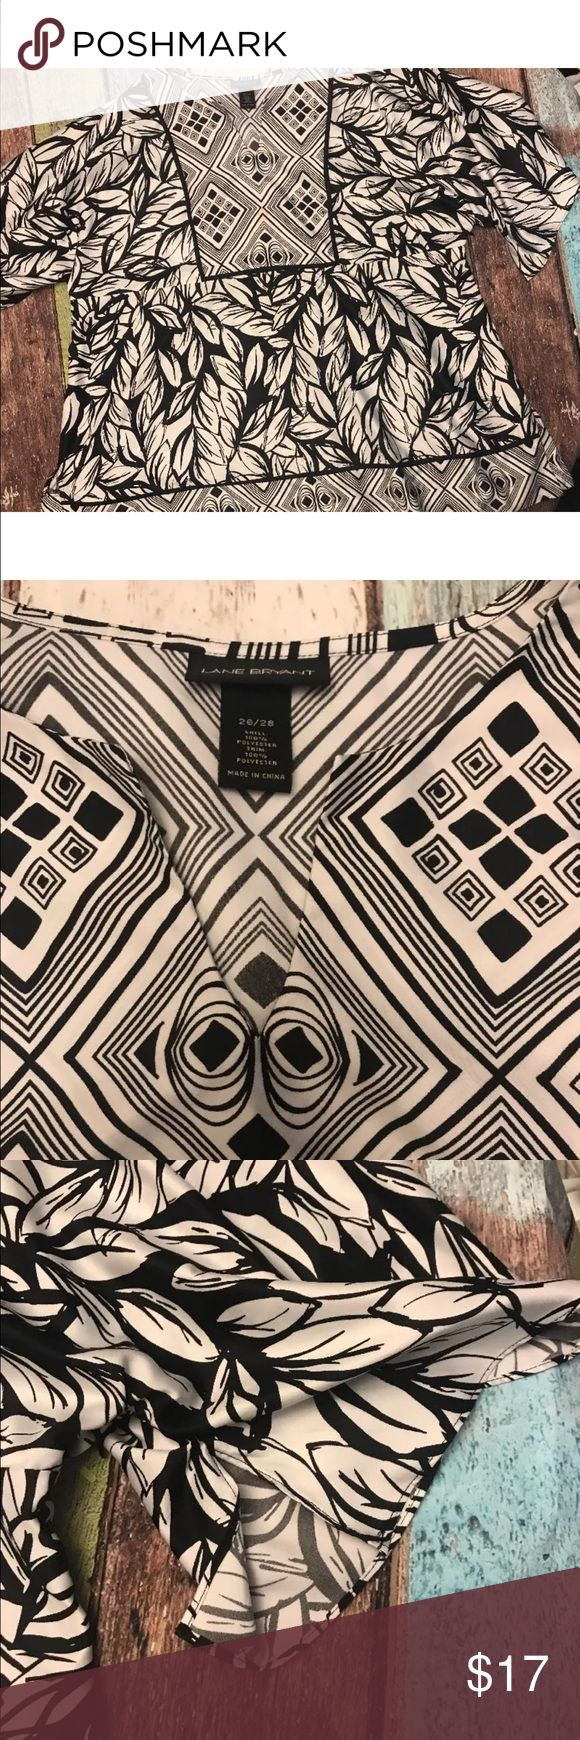 "Lane Bryant Geo Print Black and White Blouse Sz 26 Lane Bryant Womens Top Geometric Print Surrounding Floral Print Pattern Side Zipper Closure Black and White  Sz 26/28 100% Polyester  All Measurements Done With Item Laying Flat:  Chest: 27"" Length: 30.5"" Lane Bryant Tops Tunics"